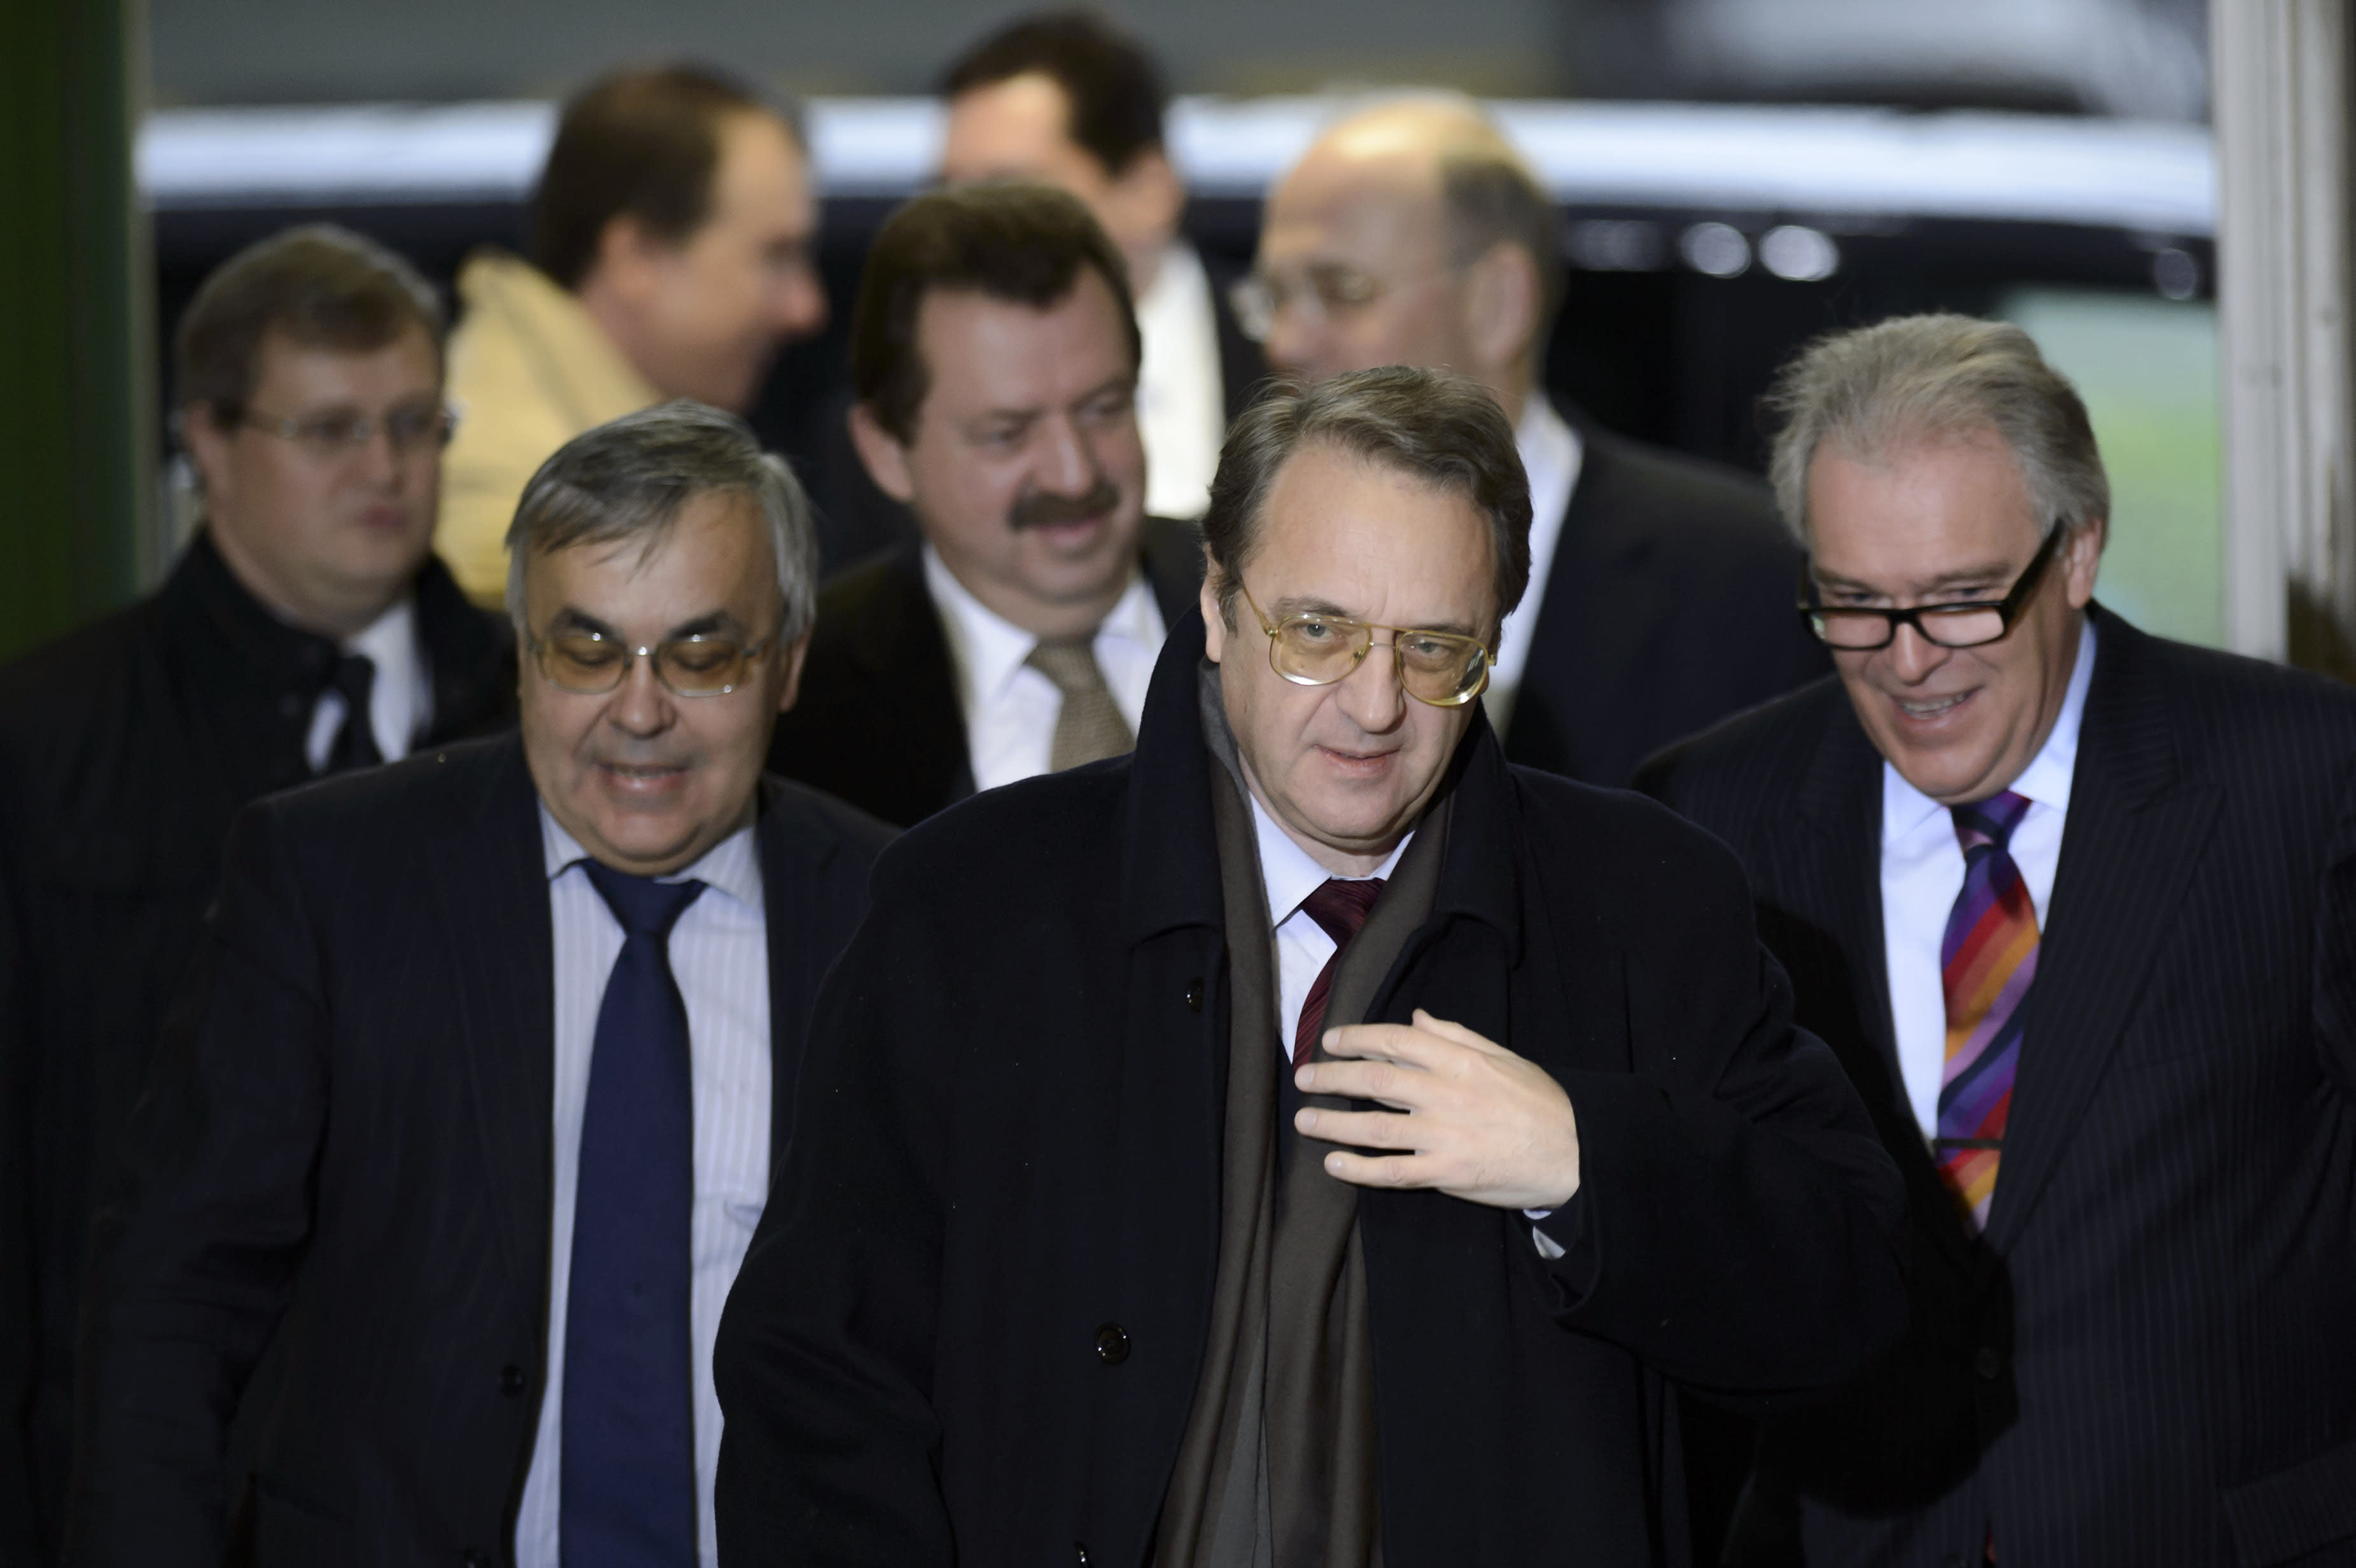 Russian deputy Foreign Ministers Mikhail Bogdanov, center, arrives for a meeting with UN Joint Special Representative for Syria Lakhdar Brahimi and U.S. Under Secretary of State for Political Affairs Wendy Sherman at the European headquarters of the United Nations, in Geneva, Switzerland, Wednesday, Dec. 20, 2013. Brahimi is meeting with U.S. and Russian delegations to try to agree which nations should be invited to Syria peace talks in Geneva next month. (AP Photo/Keystone, Martial Trezzini)